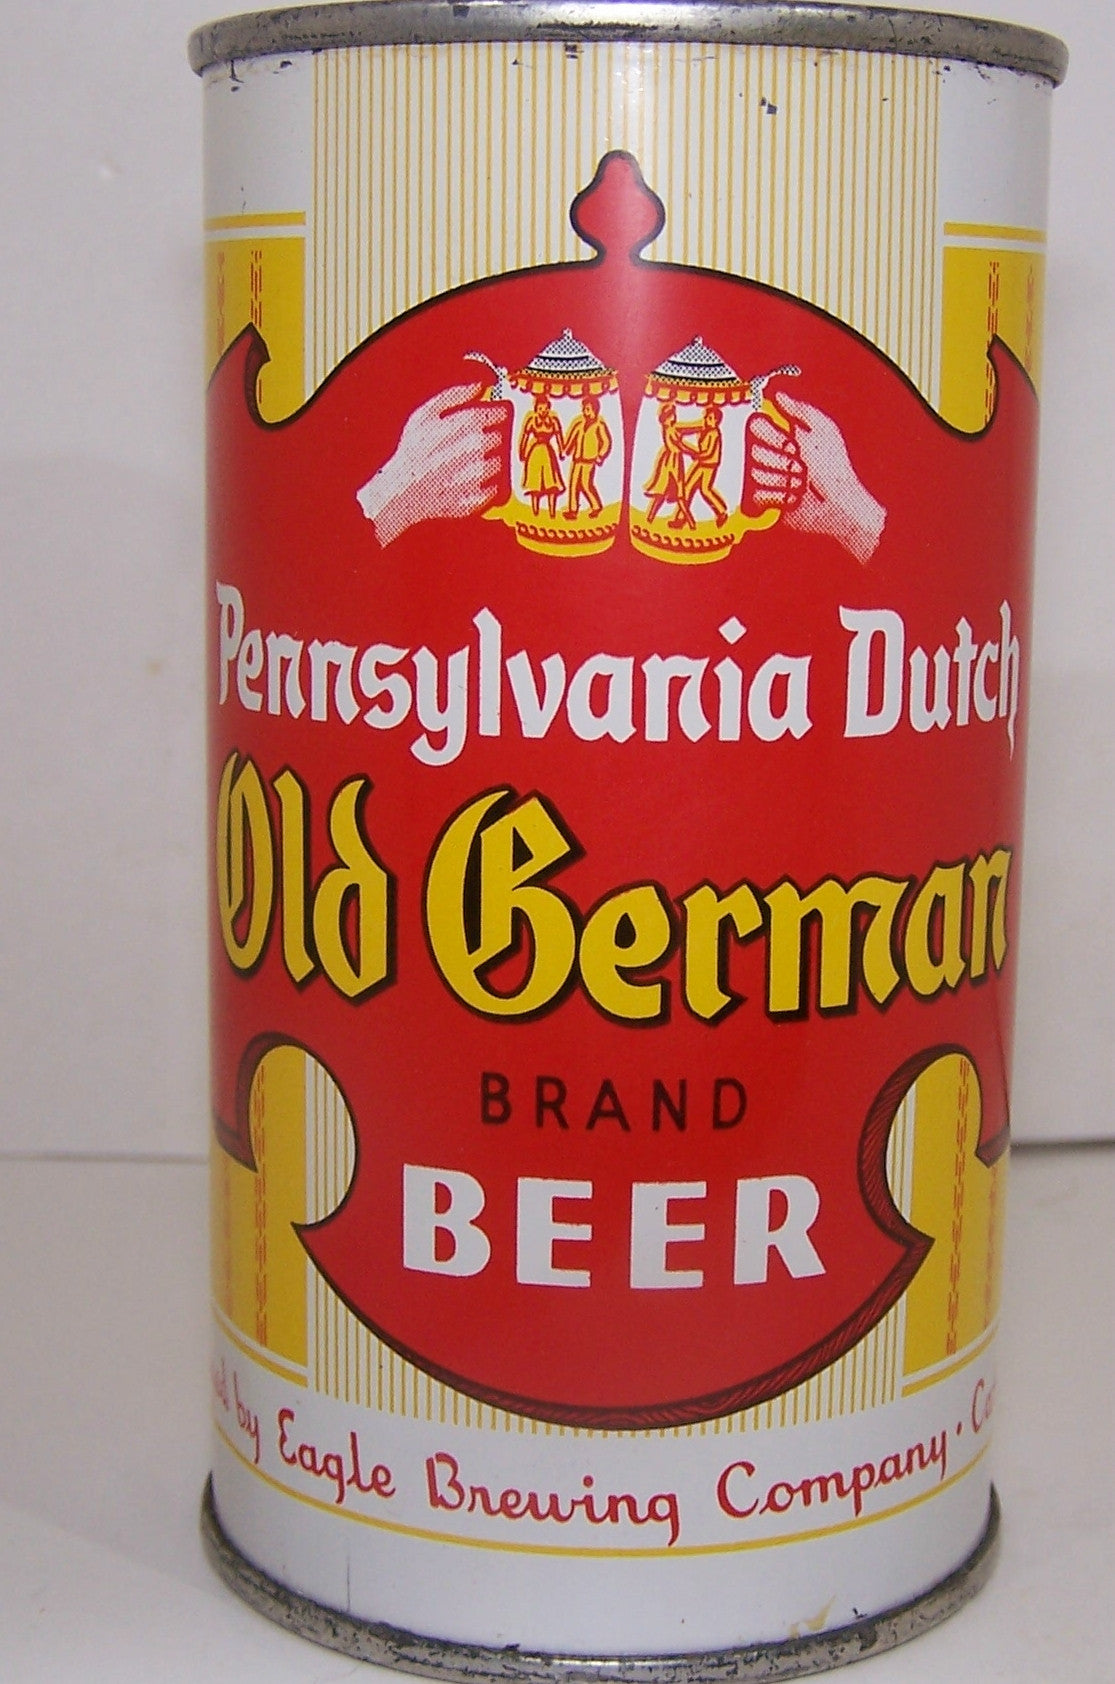 Pennsylvania Dutch Old German Beer, USBC 106-37, Grade 1/1+ Sold on 2/11/15